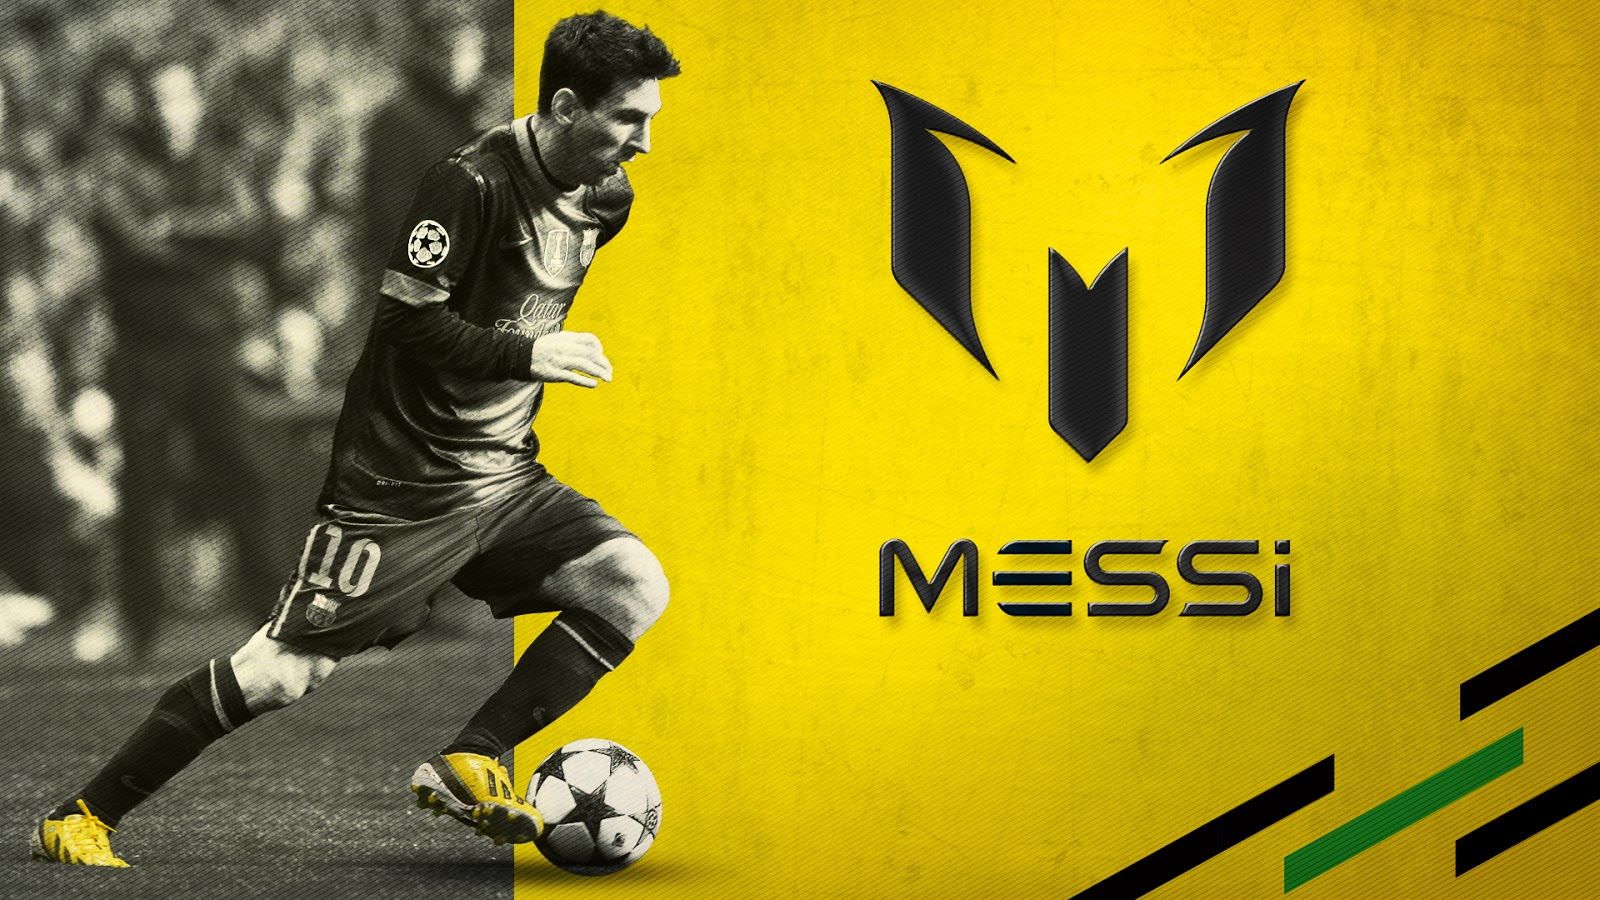 Messi Wallpaper Wide